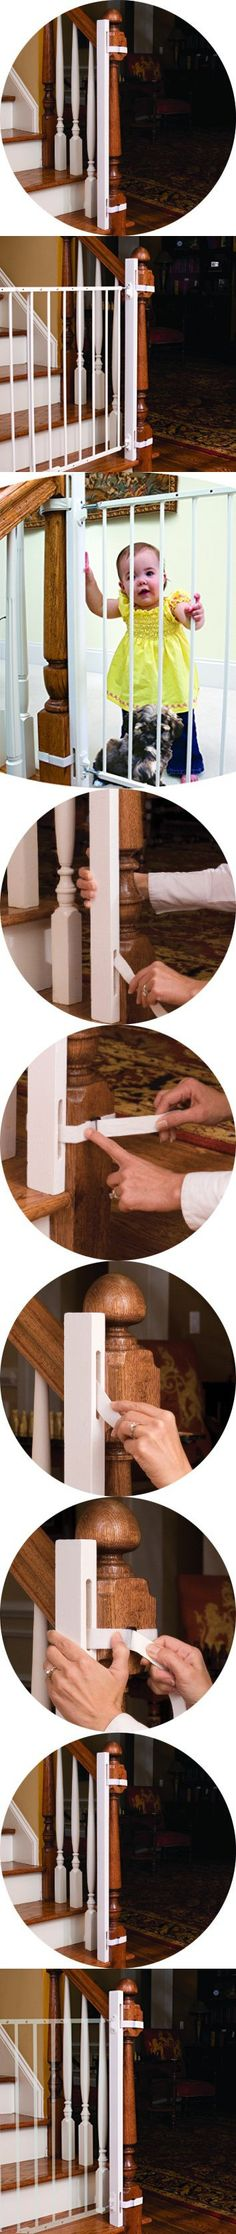 EZ-Fit Baby Safety Gate Adapter Kit - Protect Banisters and Walls - Great for Children and Pets - ONLY Includes (1) one adapter side - Please review all bullets and description prior to purchase